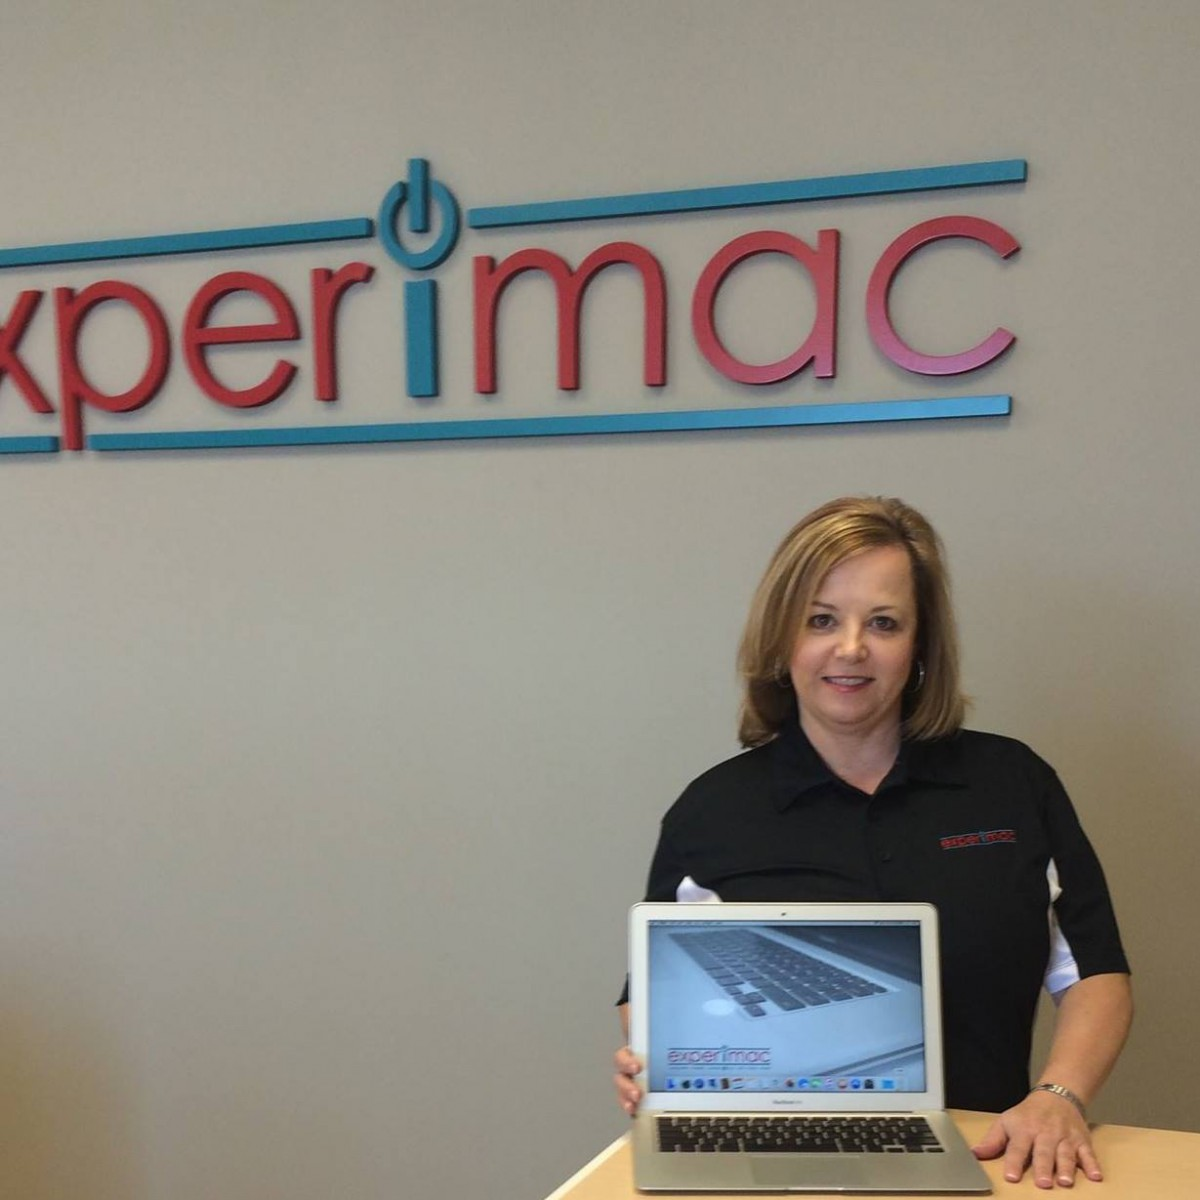 Owner Spotlight: Christine Witte of Experimac of Fenton, MO